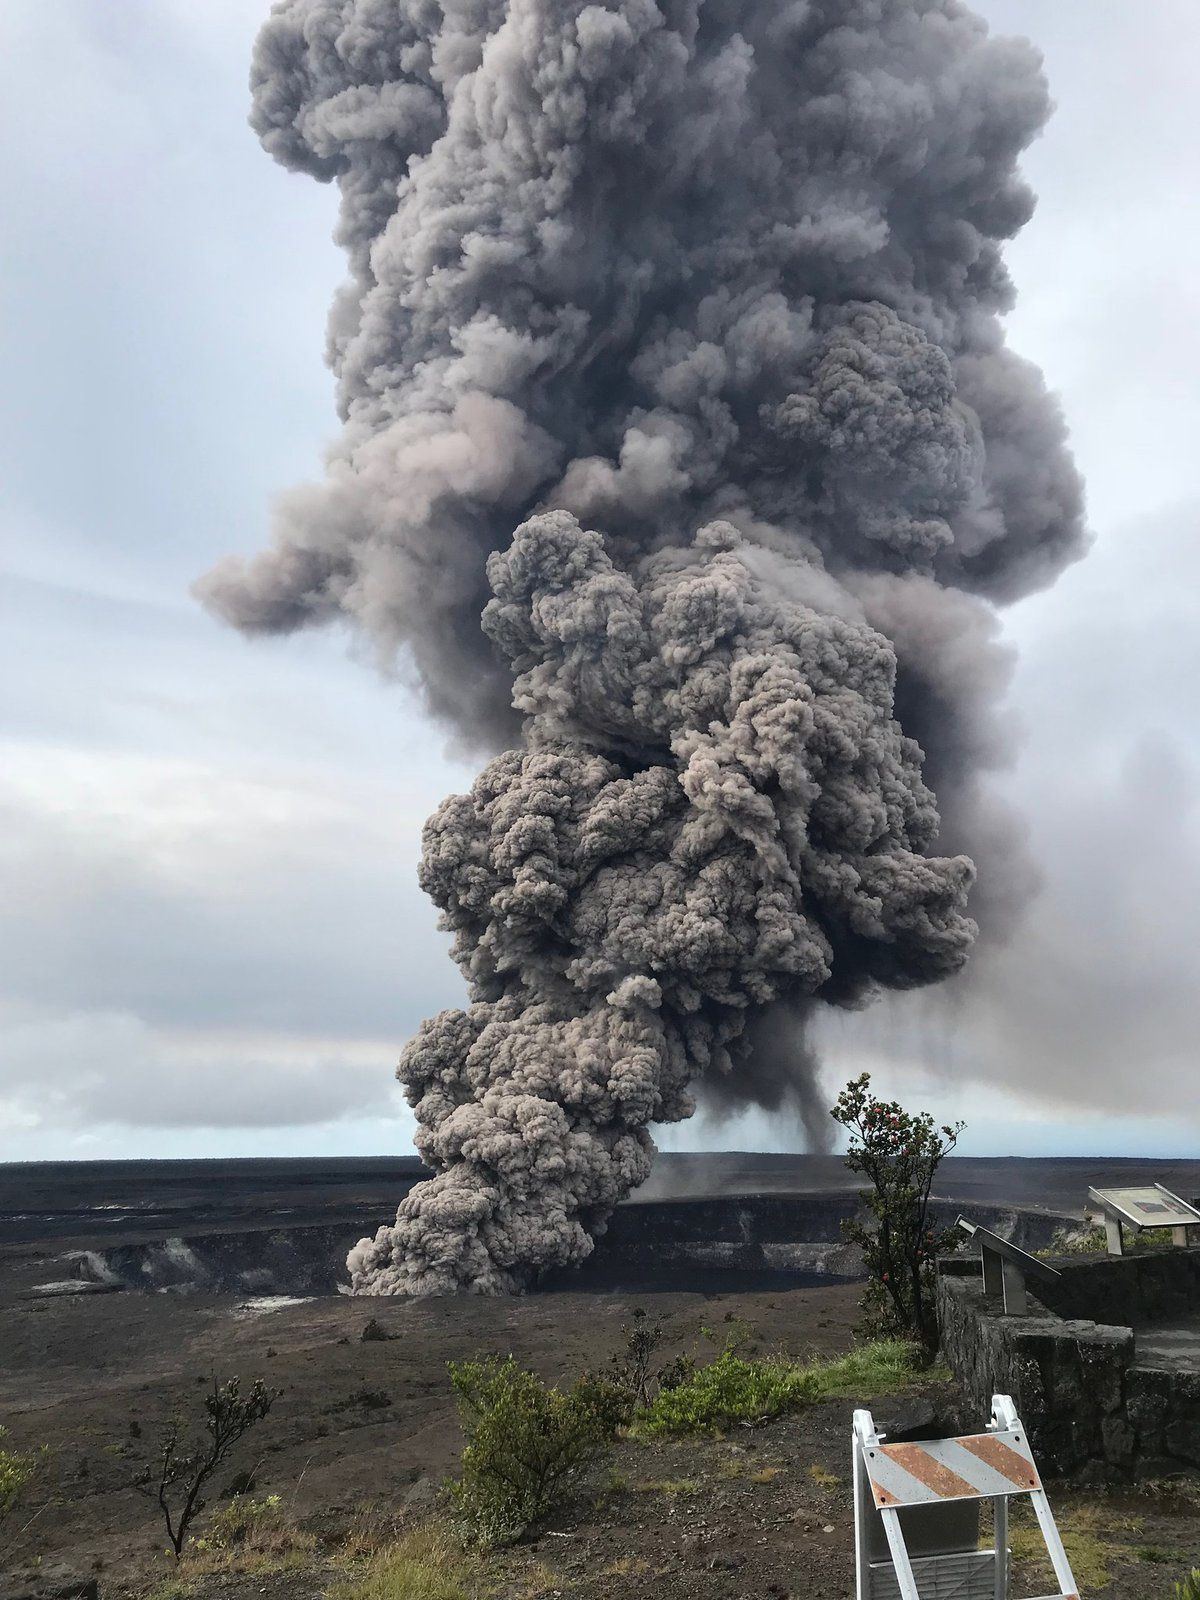 Kilauea - crater Overlook - ash plume following a collapse of rocks 09.05.2018 / 8:29 - photo HVO - USGS